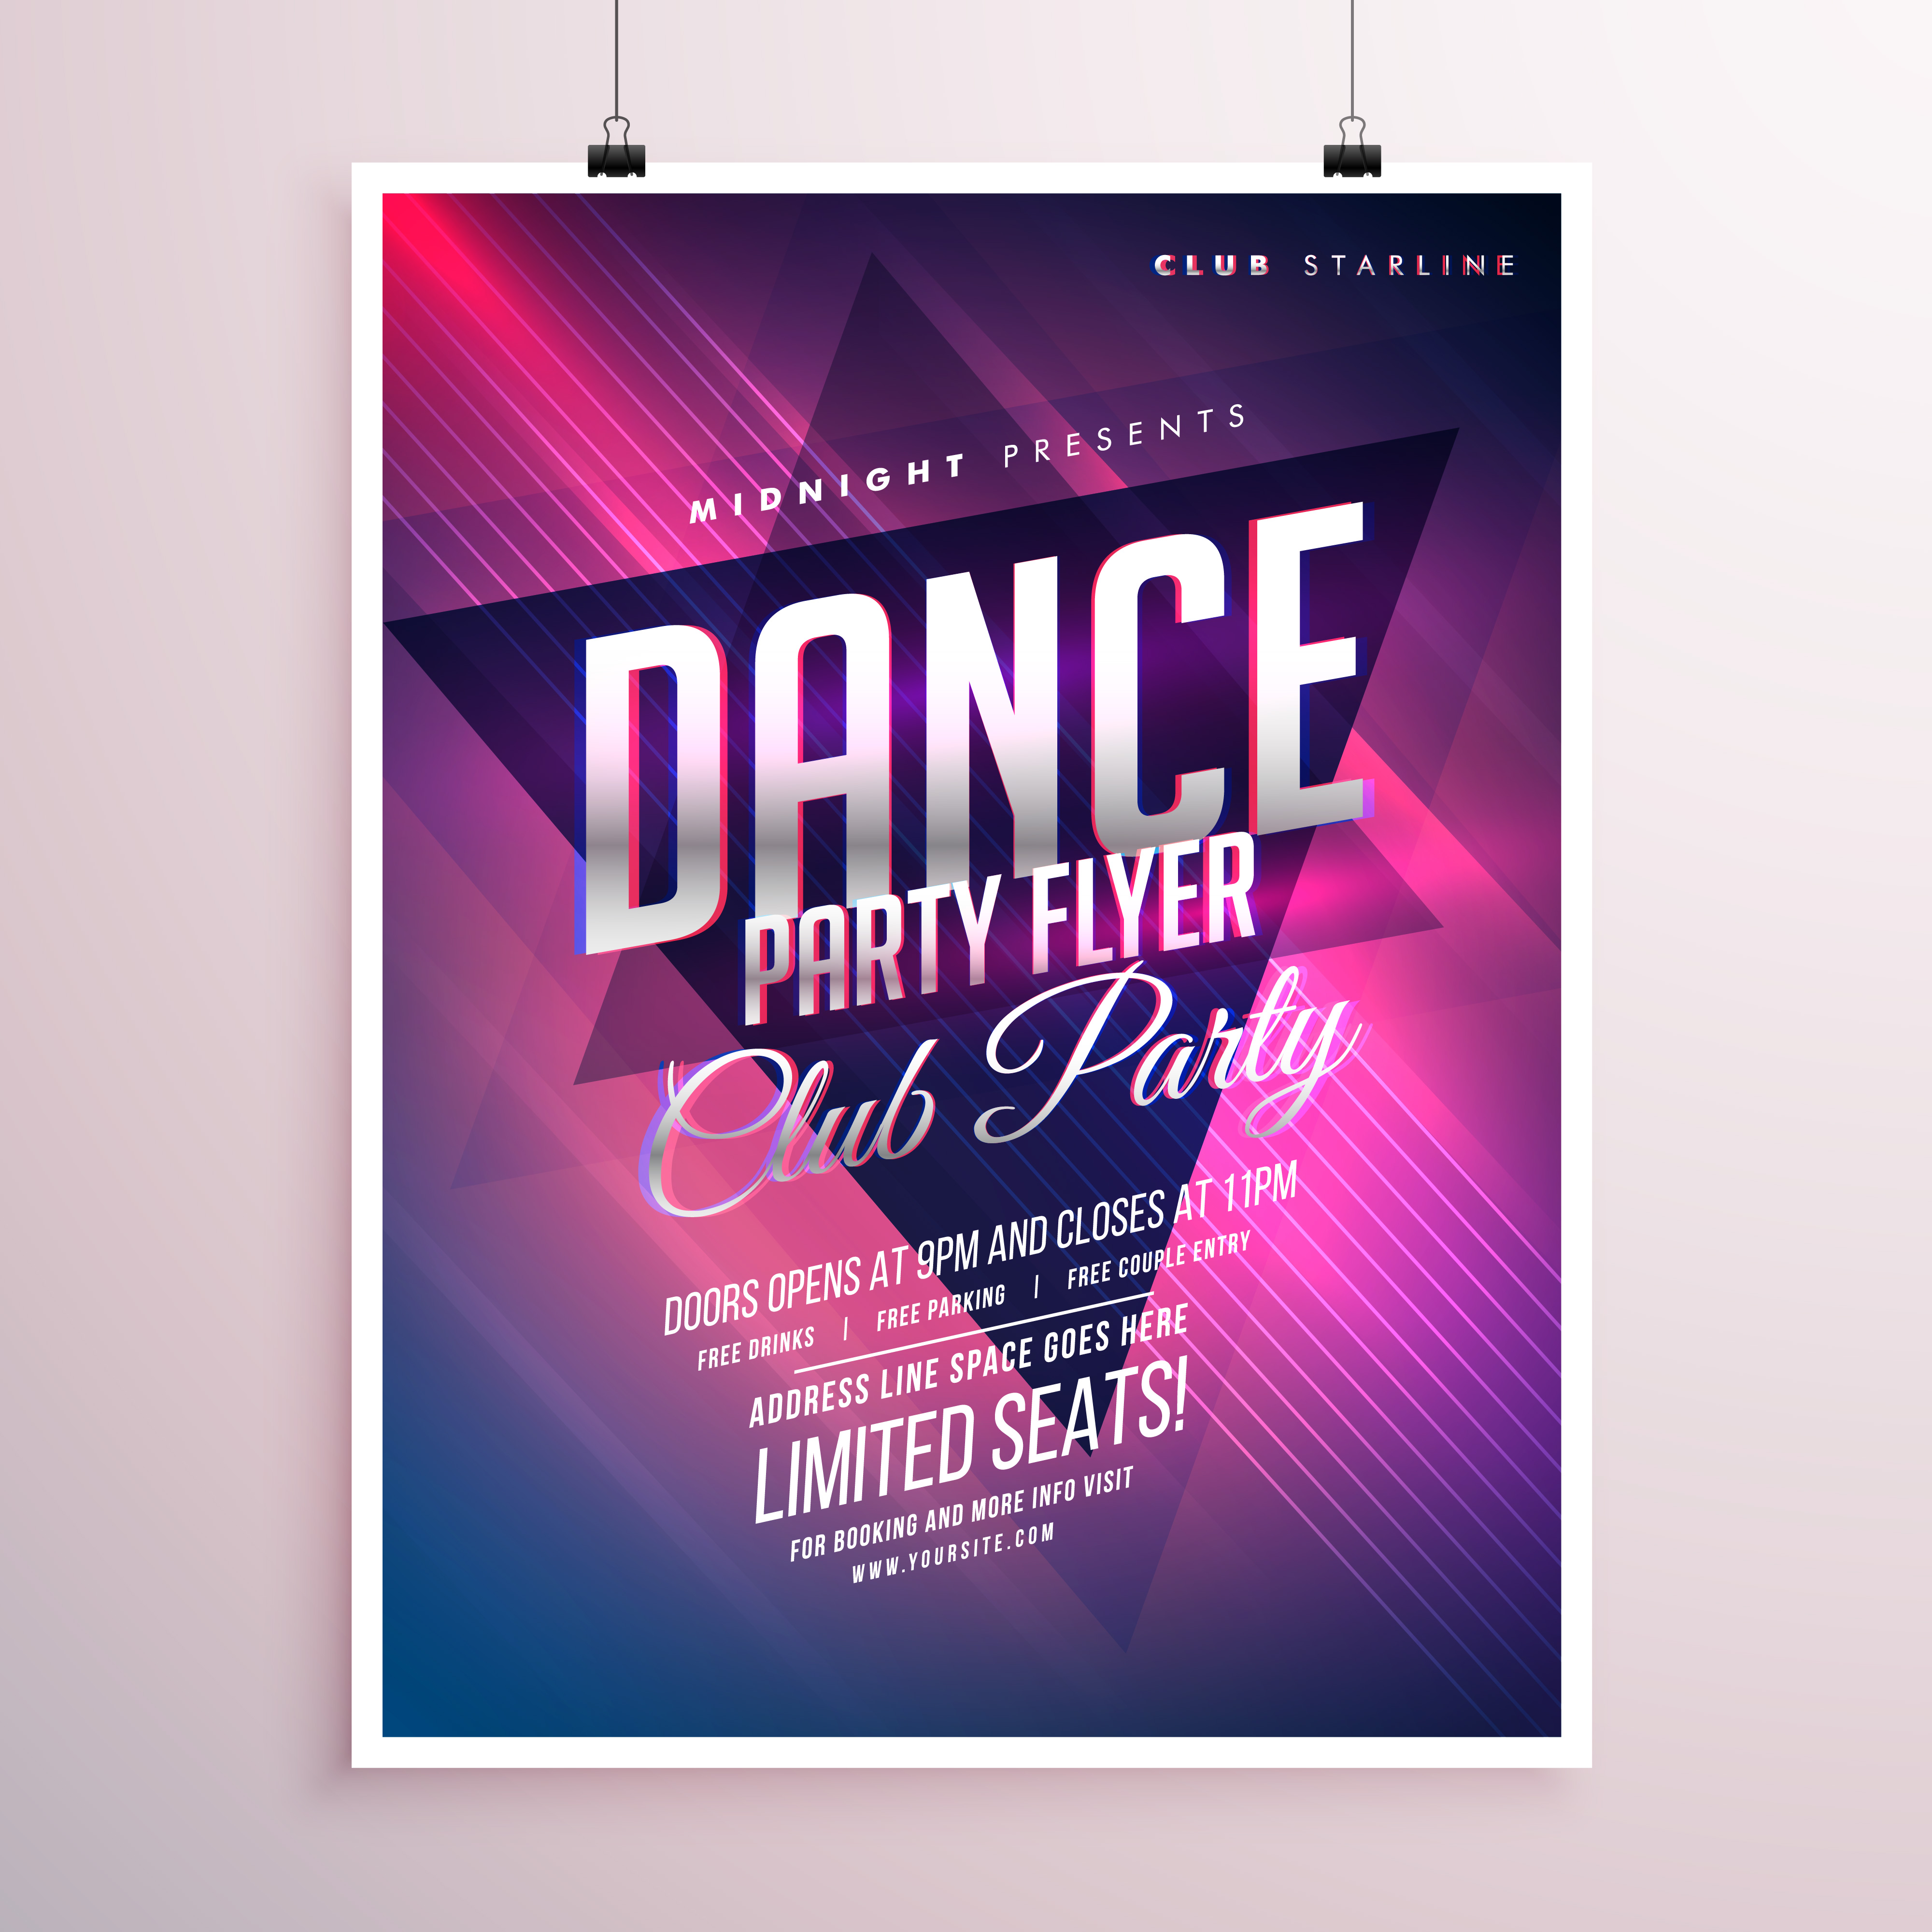 Party Flyer Design | Party Flyer Free Vector Art 10385 Free Downloads